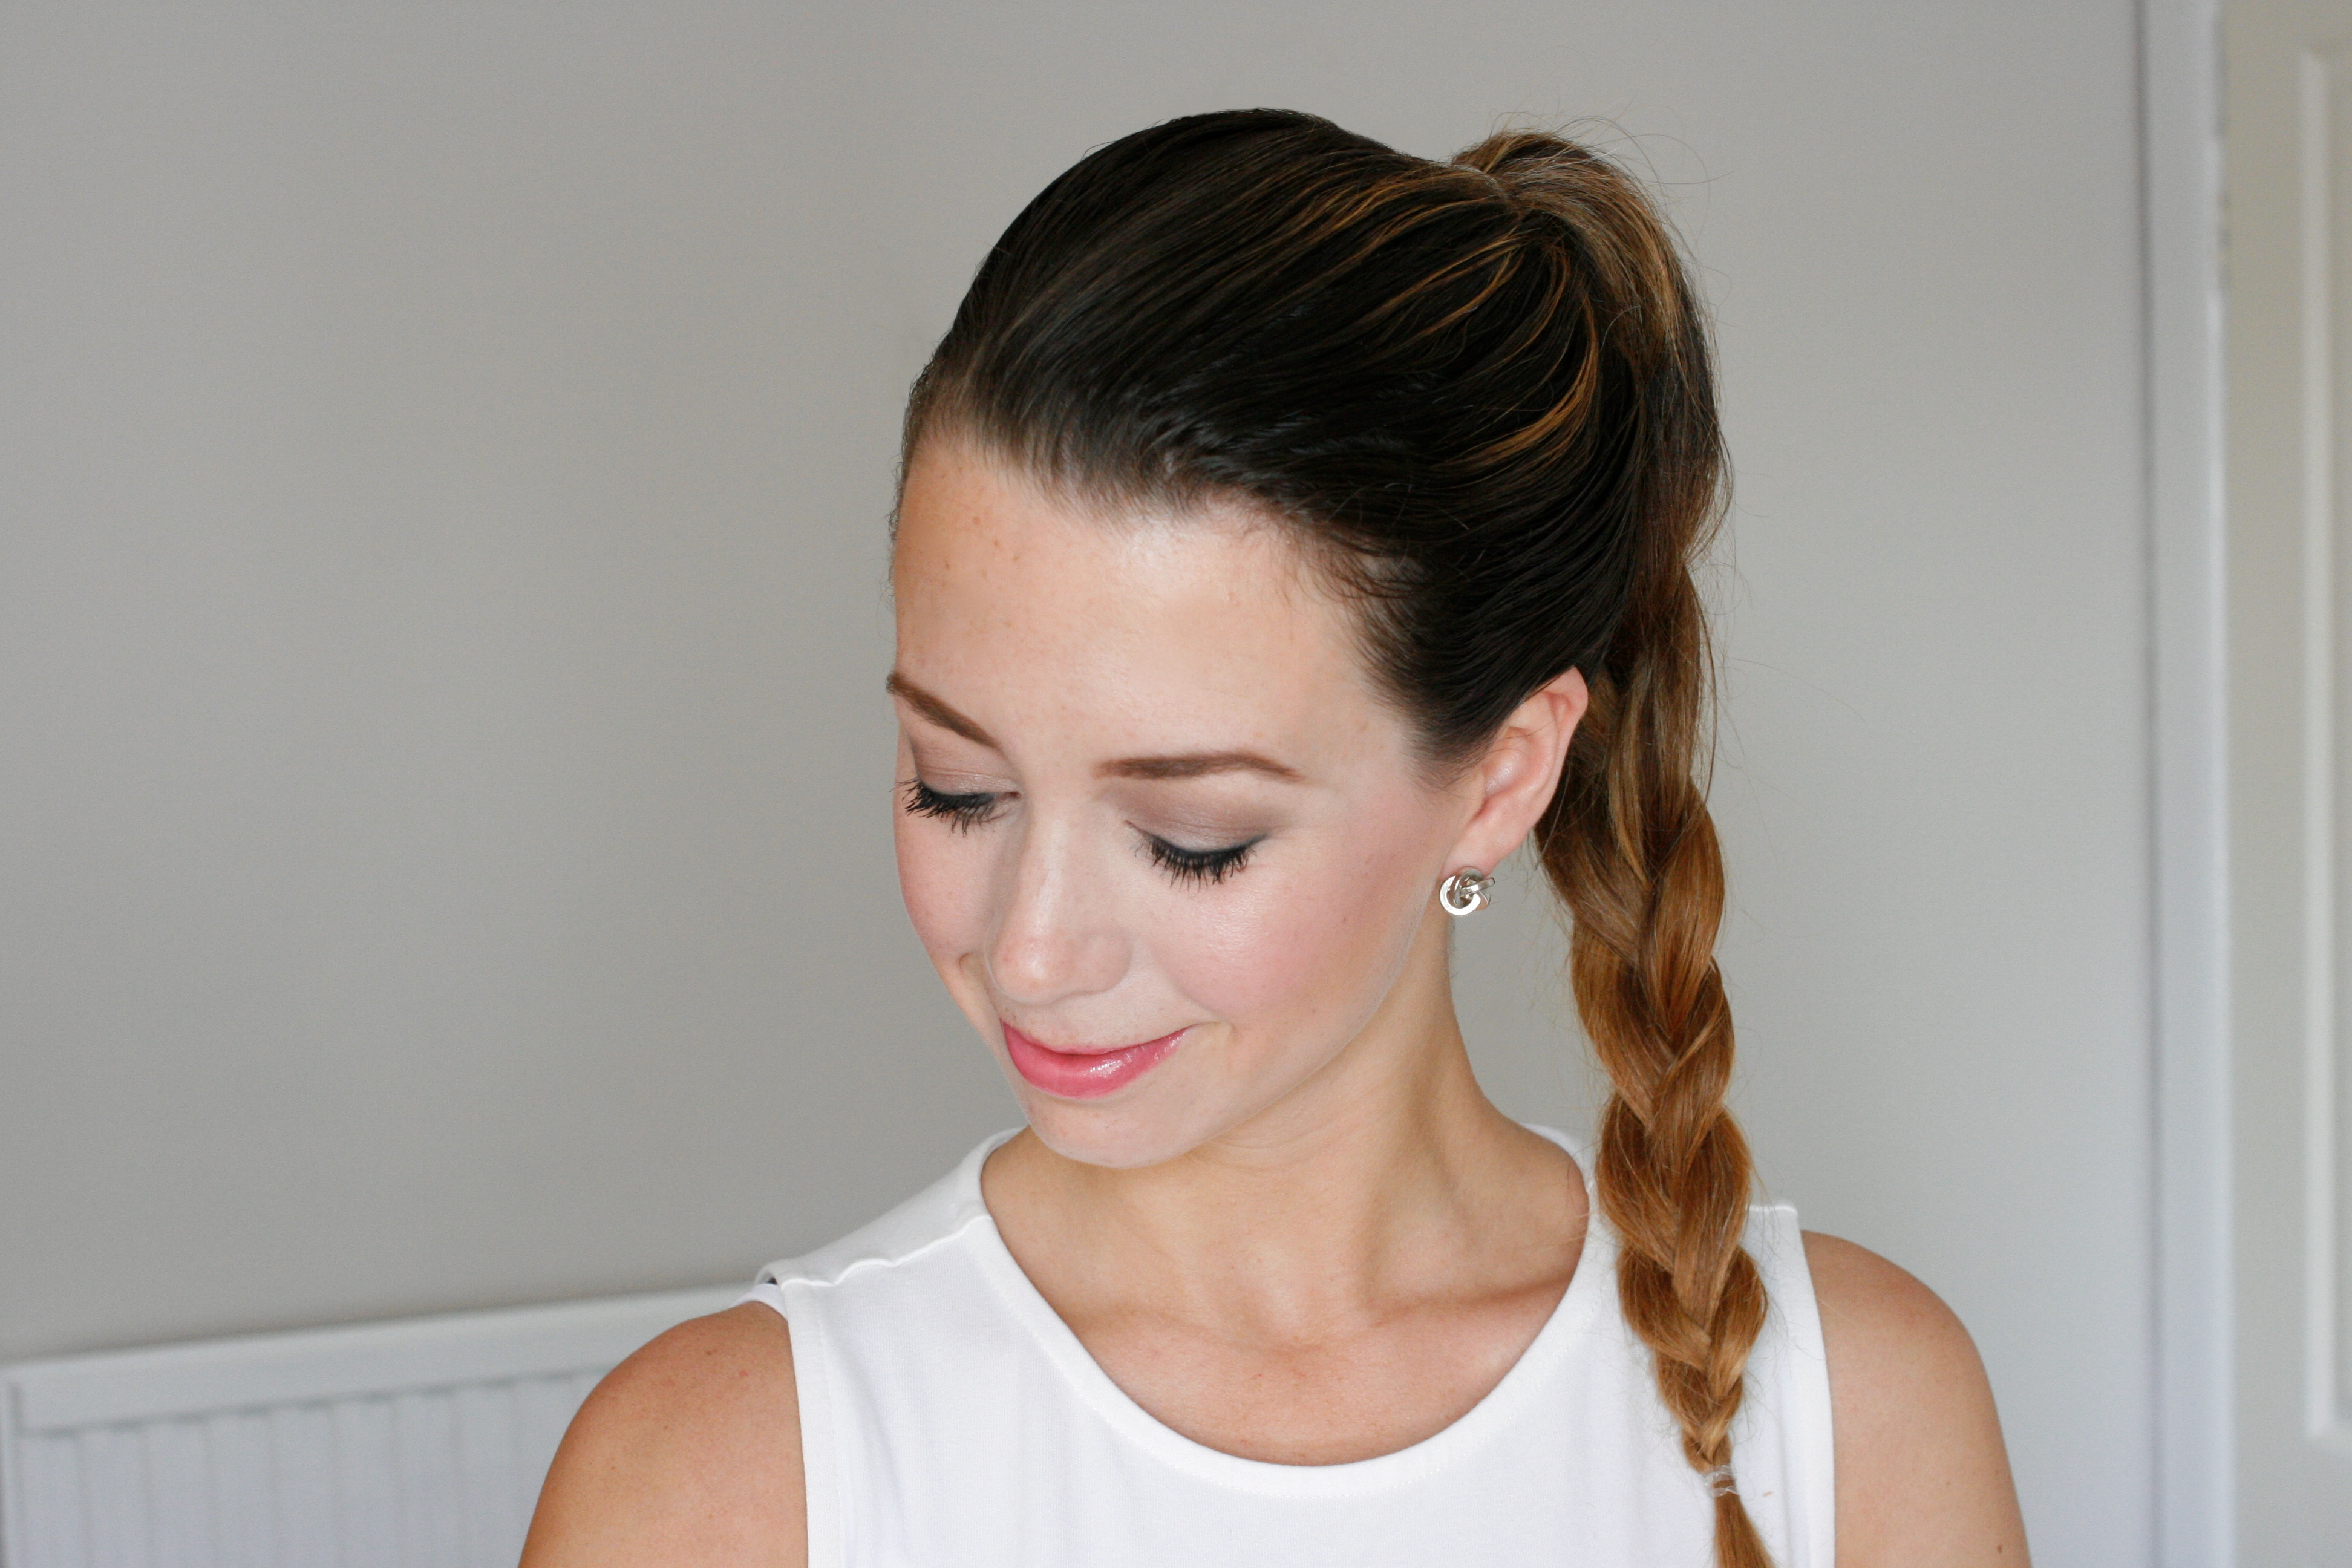 Stupendous How To Do A French Braid Zoella Solution For How To For Dummies Hairstyle Inspiration Daily Dogsangcom